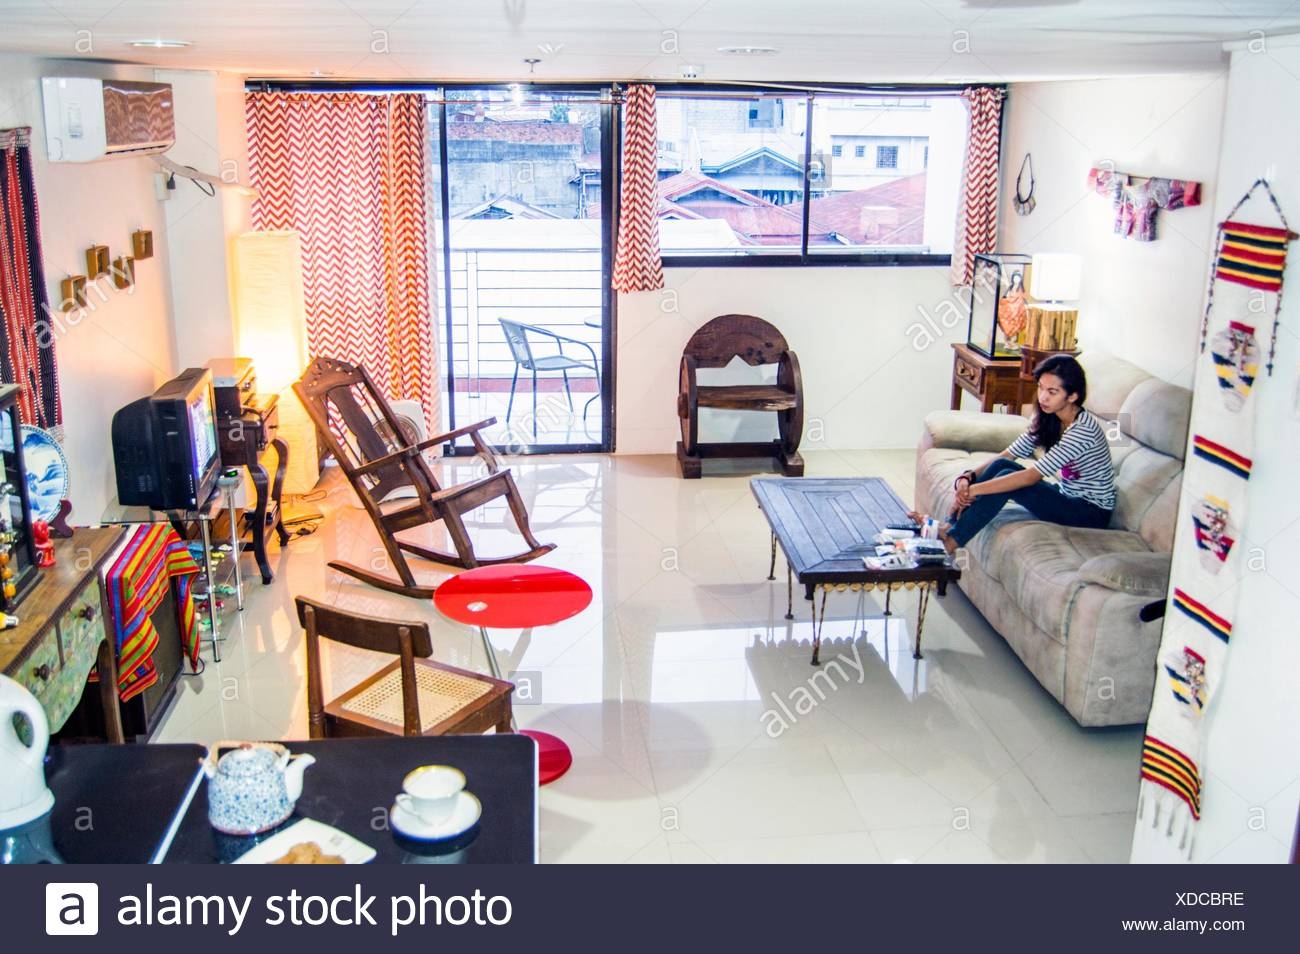 Living Room Interior With Antique And Modern Furnishings And Decor Downtown Cebu Philippines Stock Photo Alamy